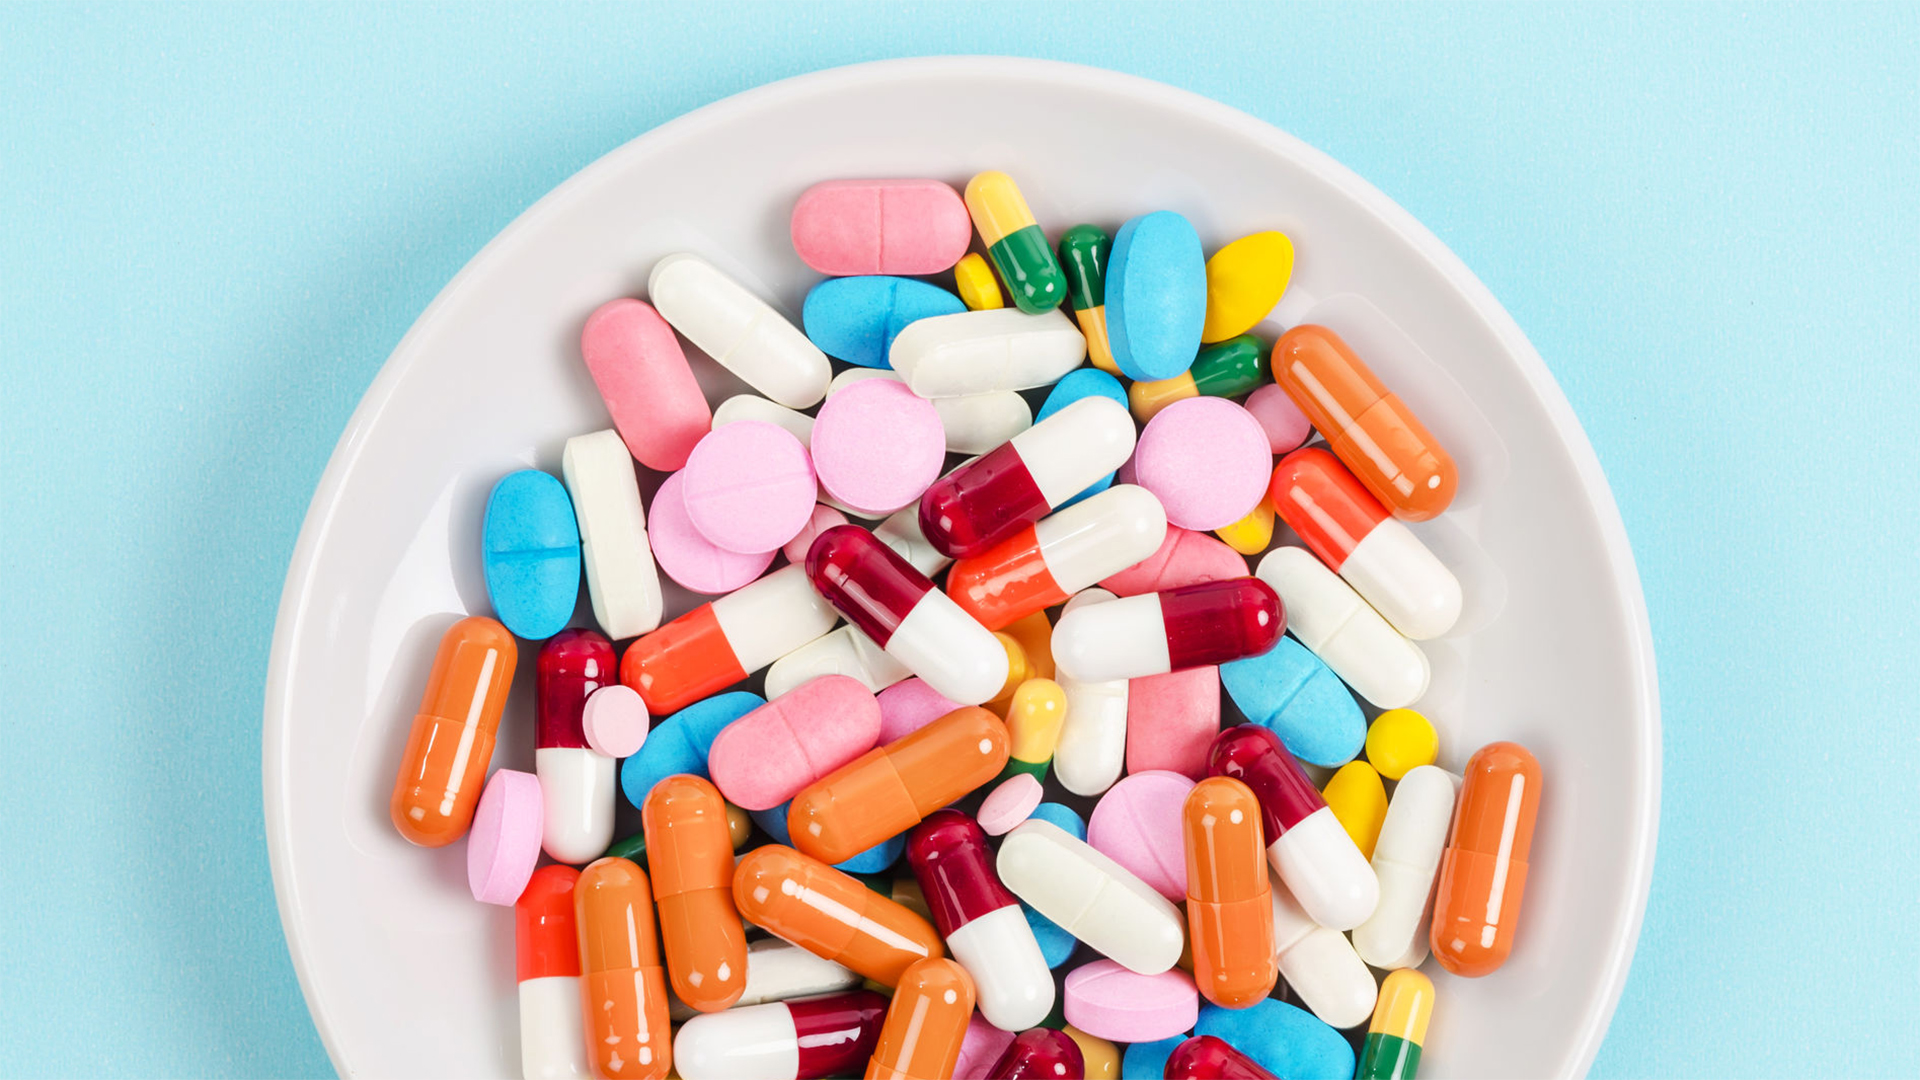 How are vitamin supplements made?